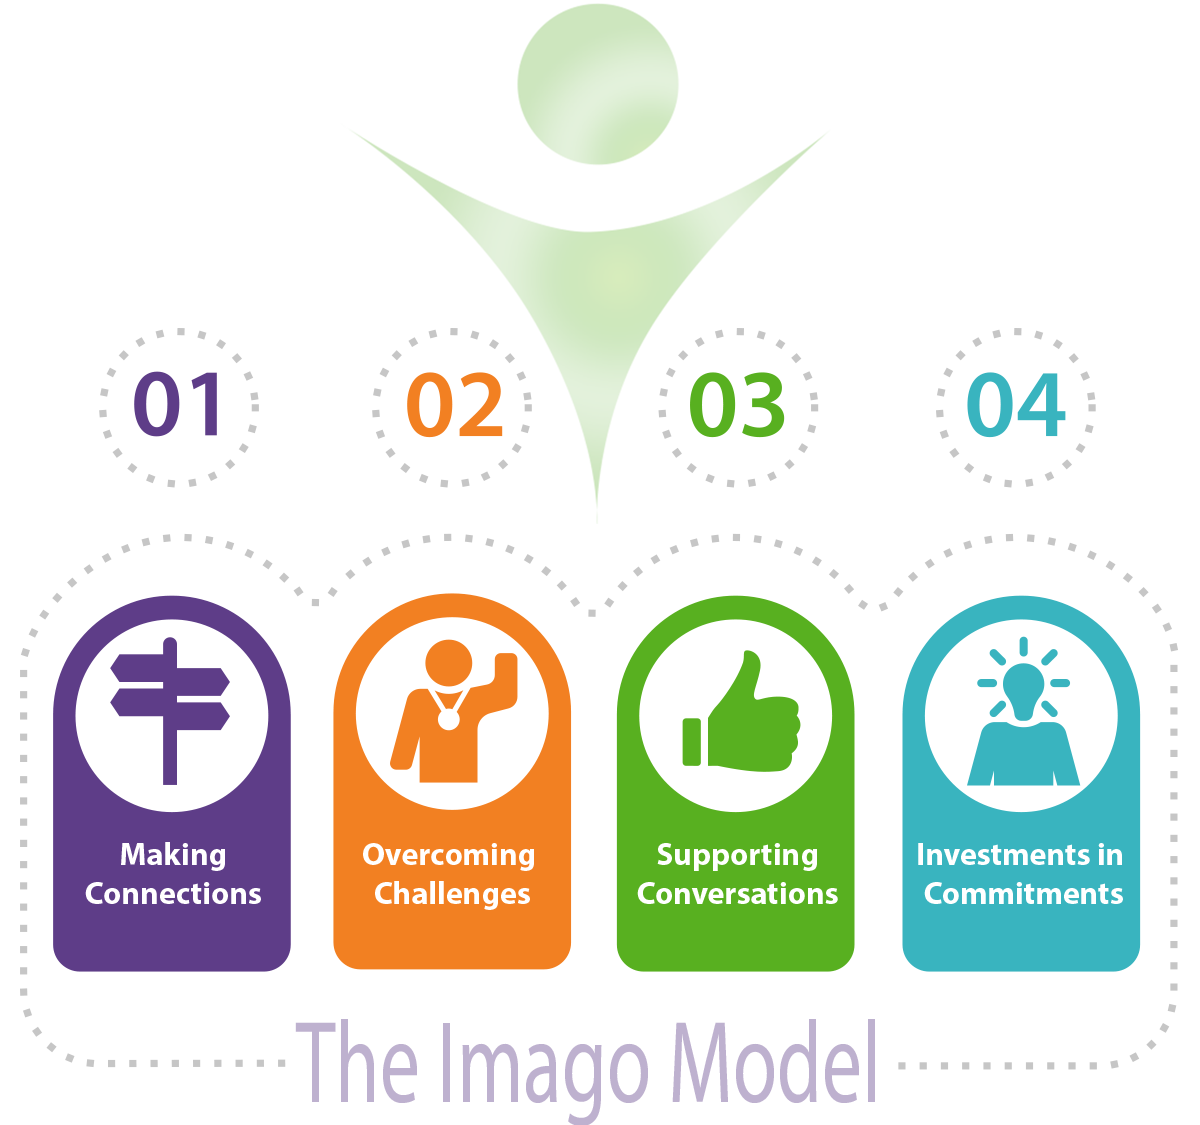 The Imago Corporate Coaching Model - Making connections, supporting conversations, overcoming challenges, investments in commitments